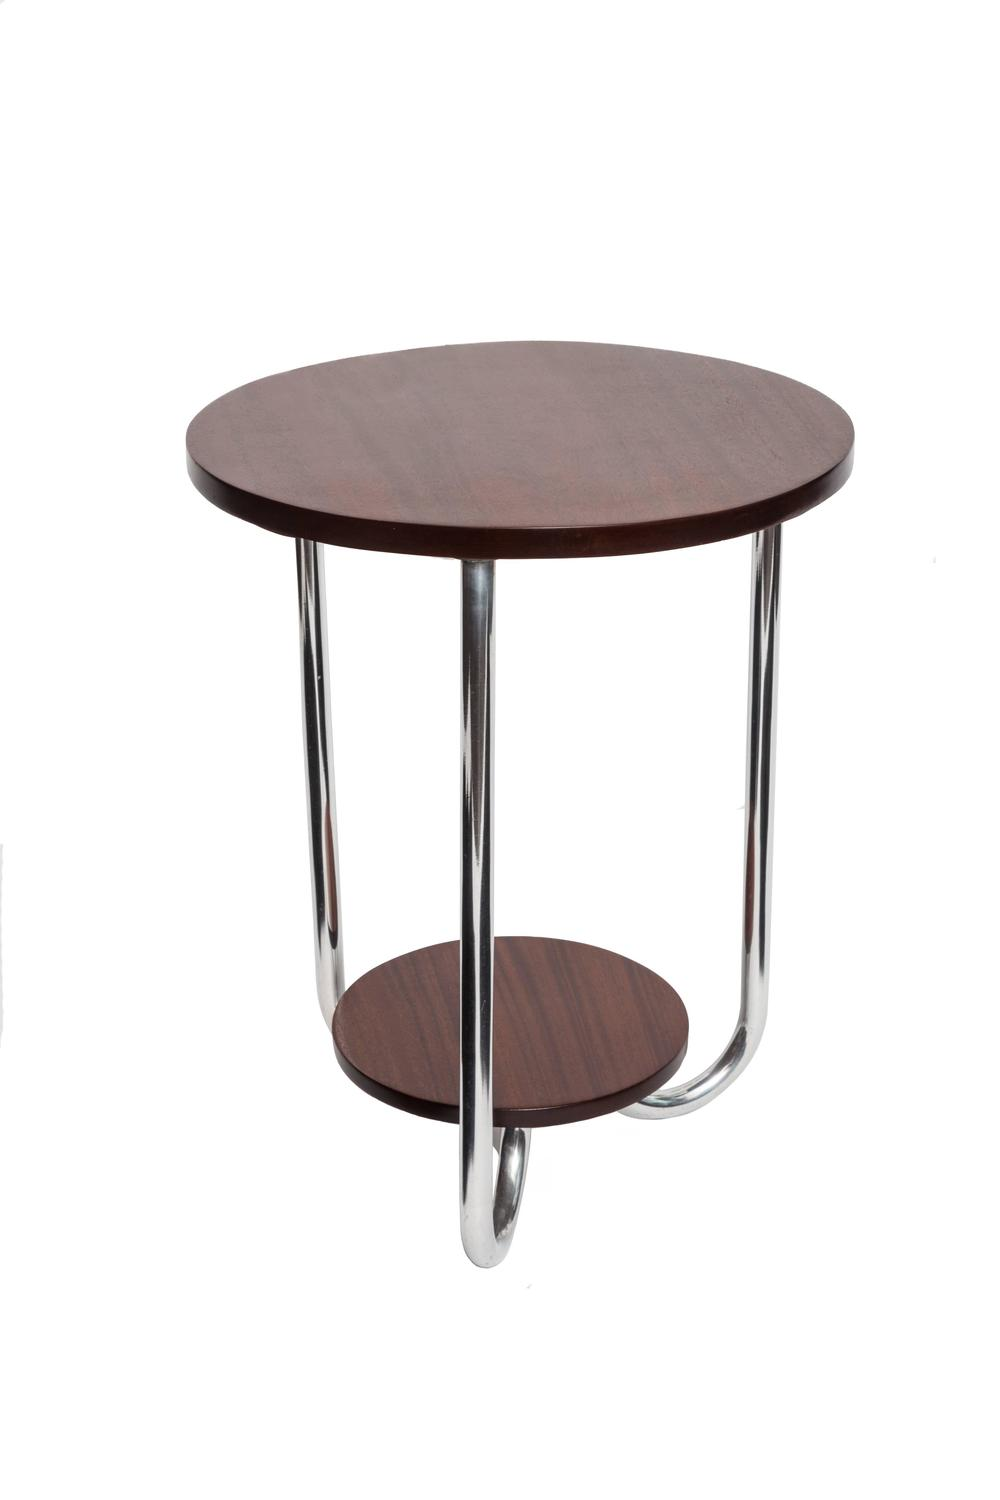 Mid-Century Modern Walnut and Chrome Side Table at 1stdibs